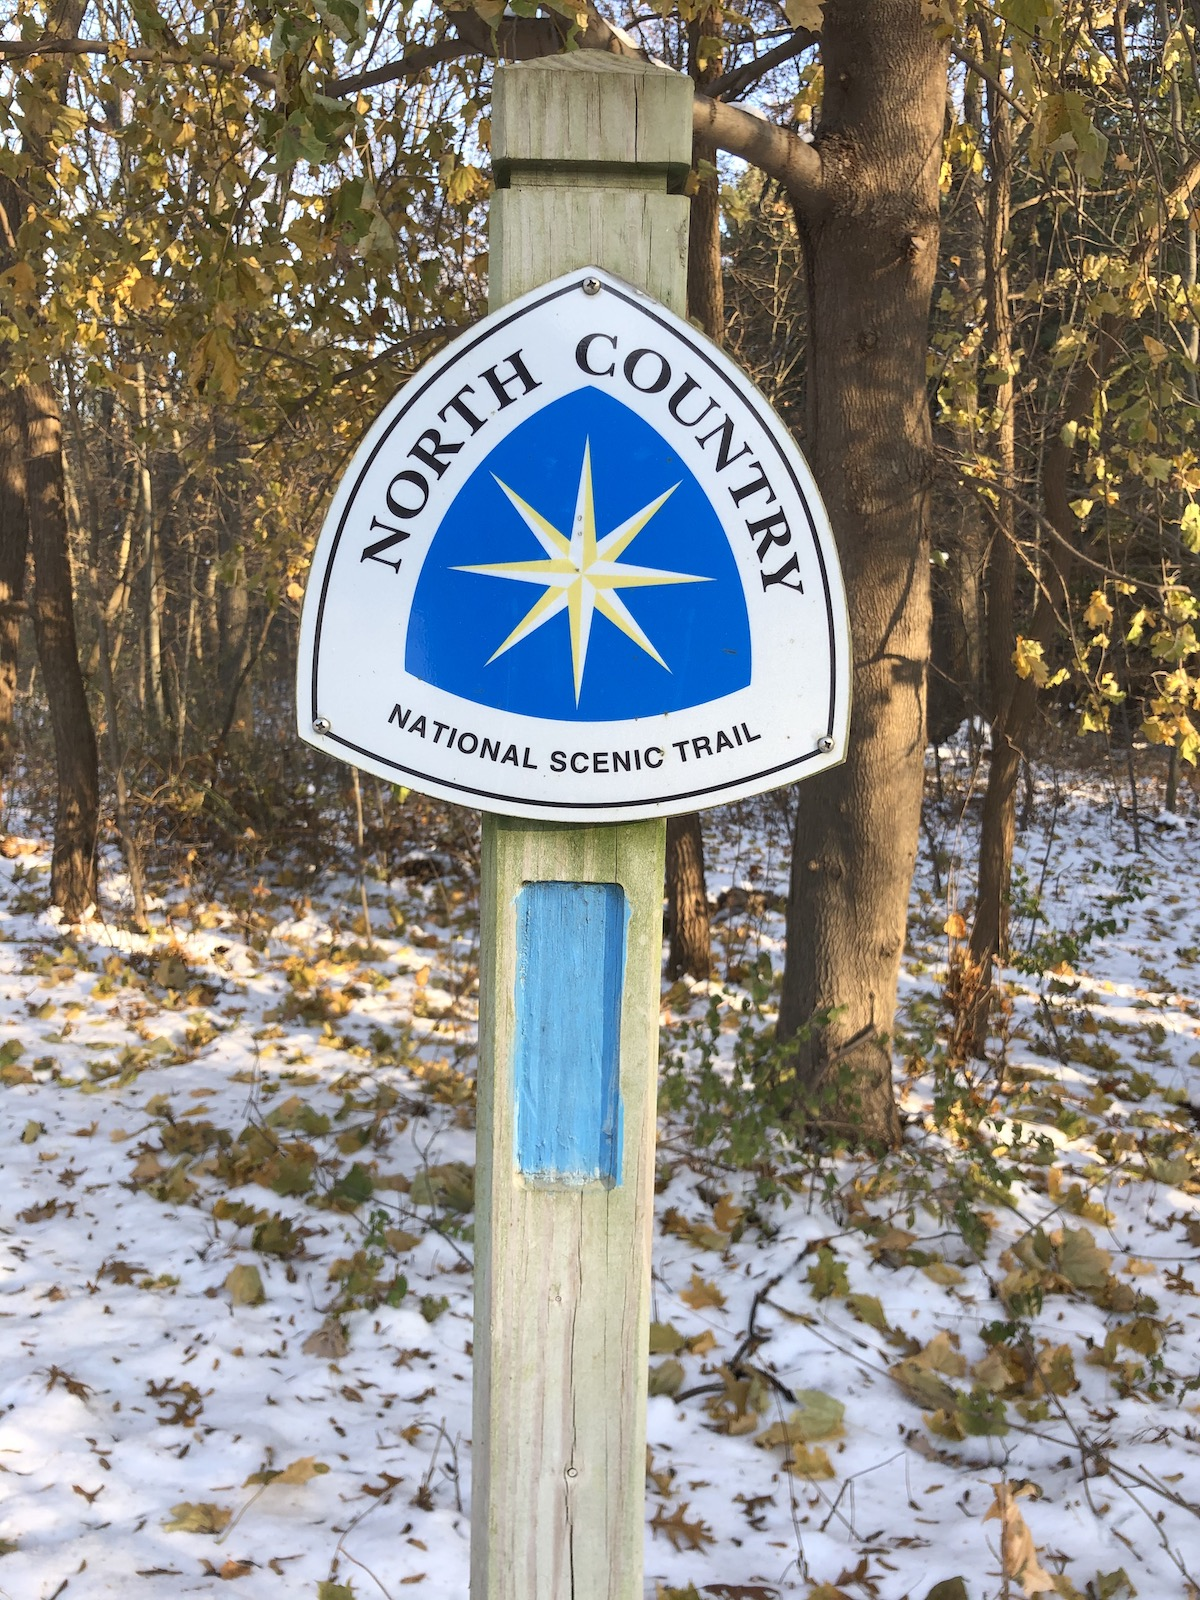 A blue and white sign identifying the North Country Trail